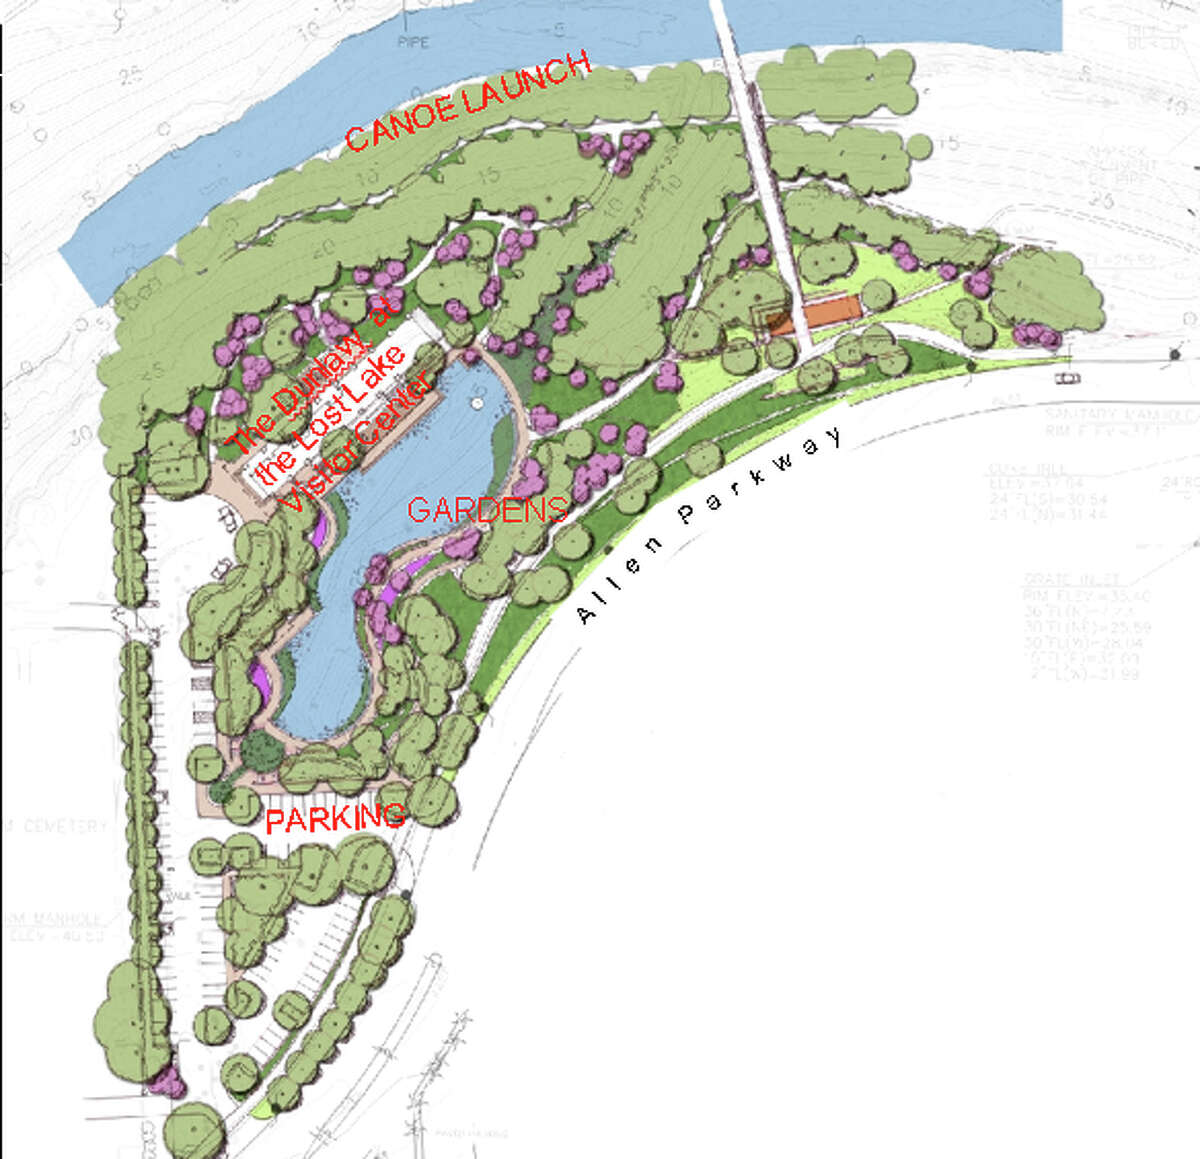 The building housing the Dunlavy will also contain the Buffalo Bayou Park visitors center and a boat rental facility. It will have 80 parking spaces.